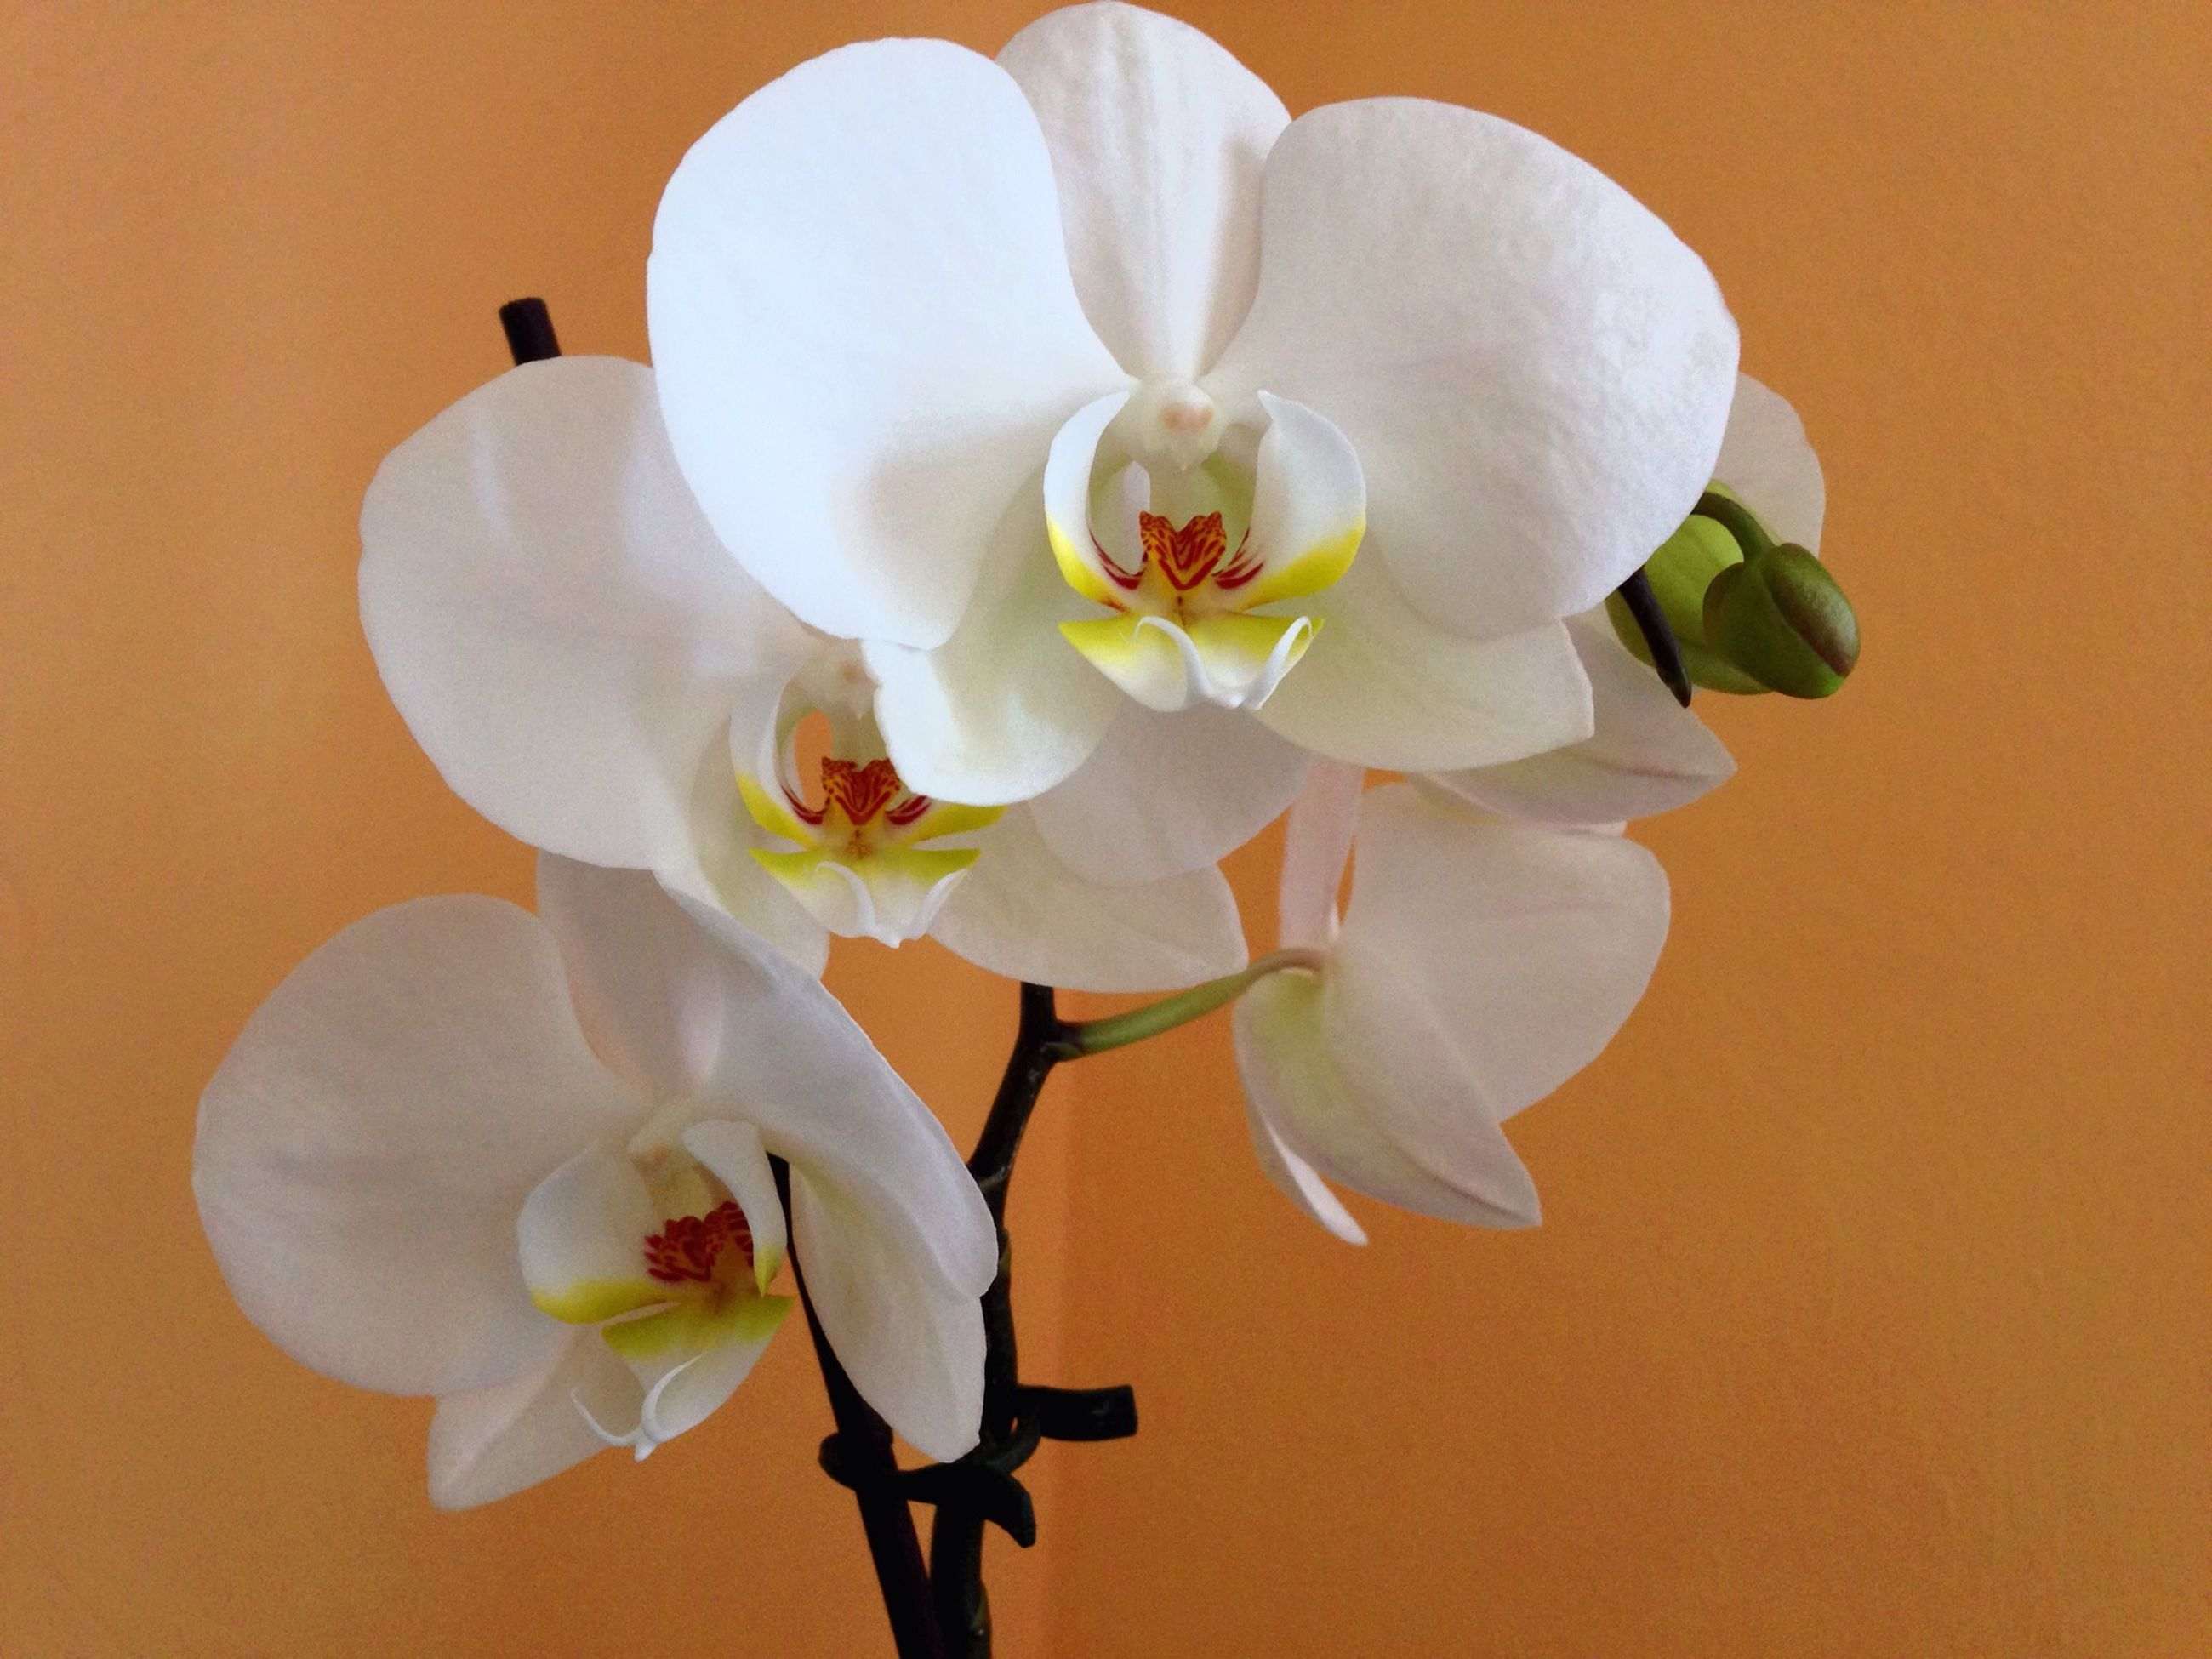 flower, petal, white color, fragility, flower head, freshness, beauty in nature, growth, close-up, nature, white, orchid, stamen, blooming, in bloom, pollen, indoors, blossom, stem, no people